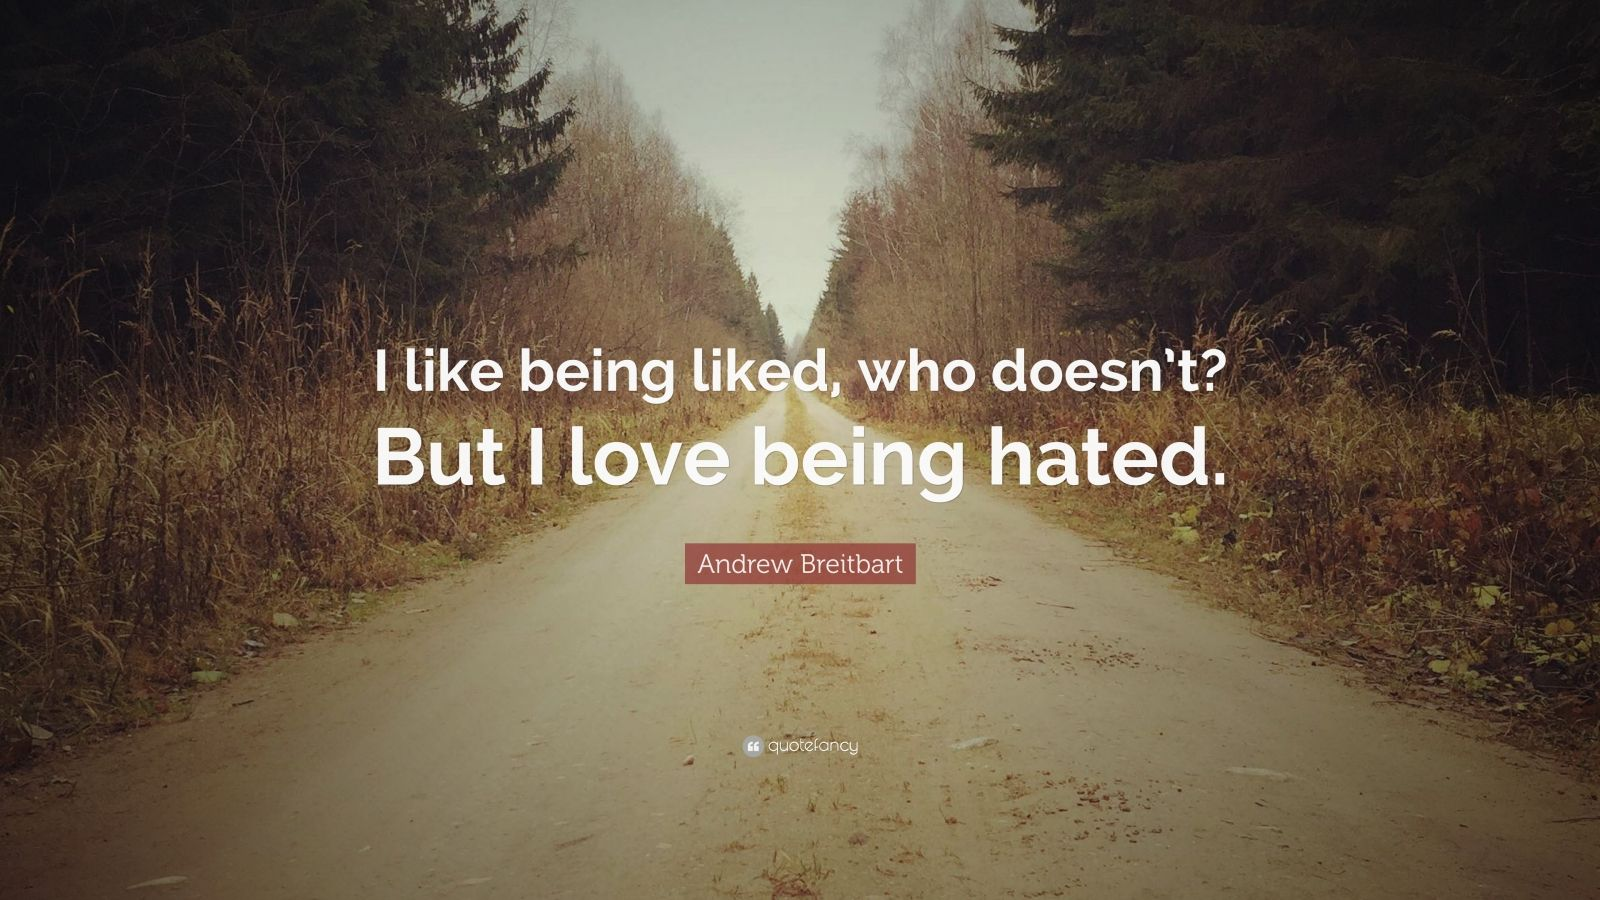 https://quotefancy.com/media/wallpaper/1600x900/2117283-Andrew-Breitbart-Quote-I-like-being-liked-who-doesn-t-But-I-love.jpg